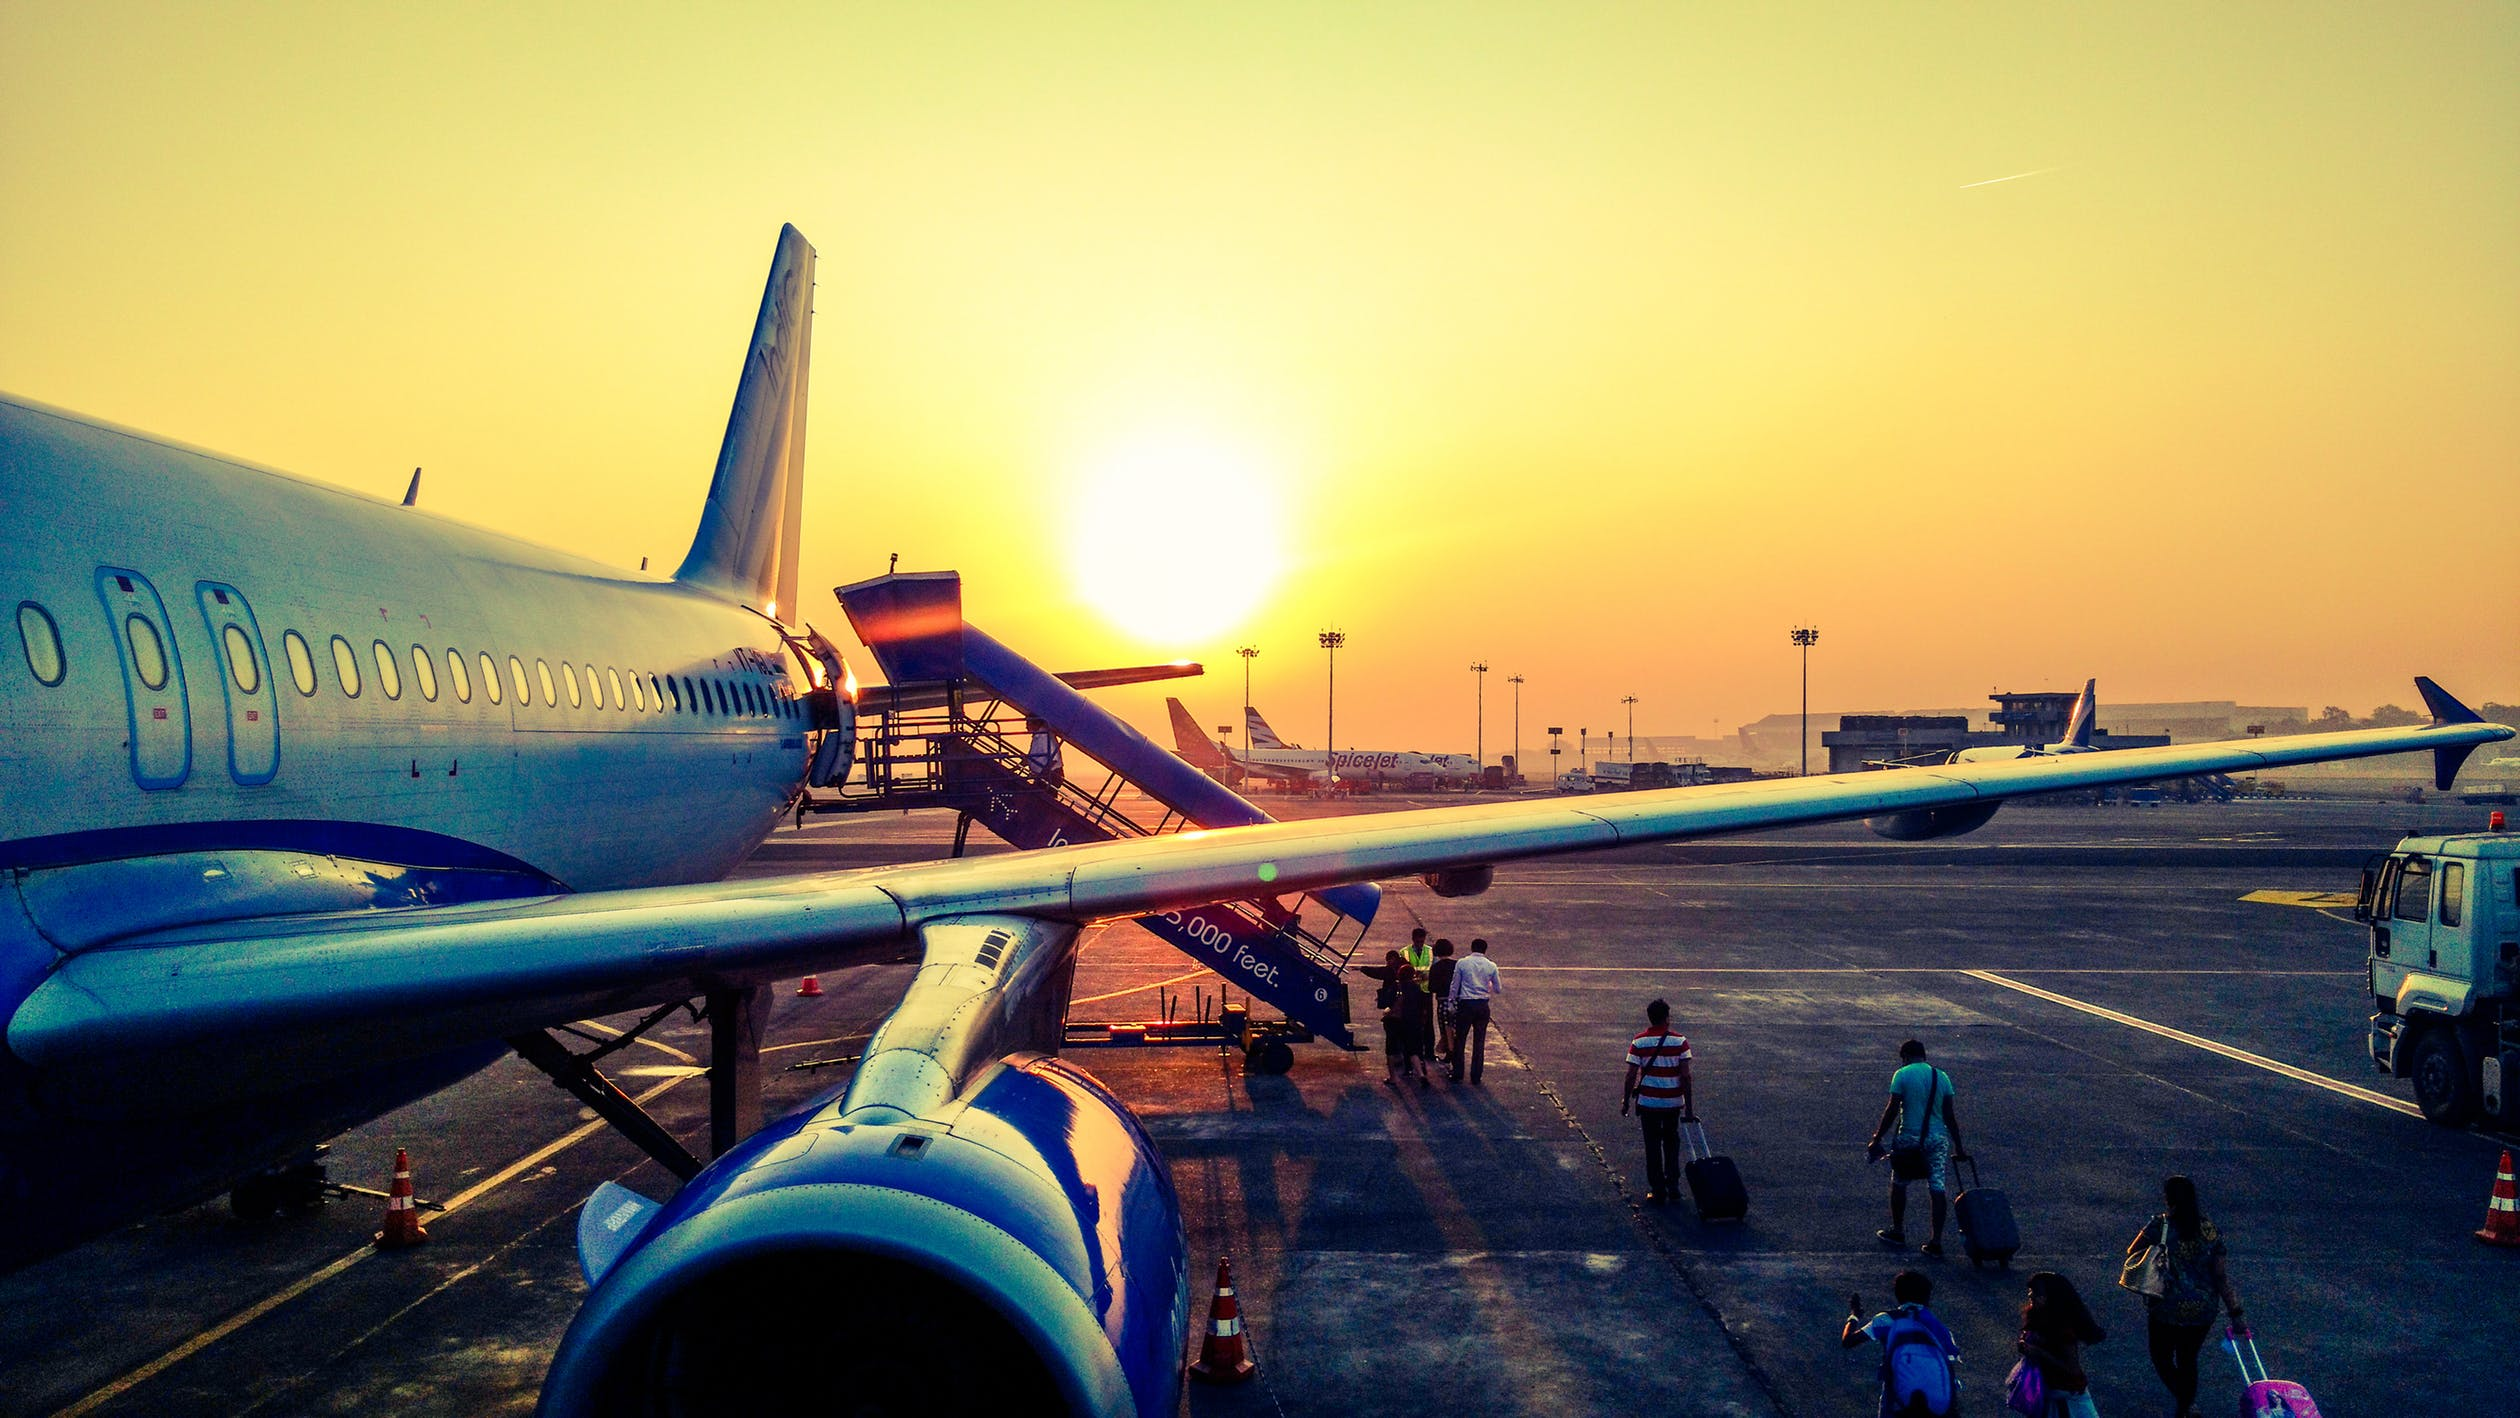 prepare air cargo for transport by choosing the best air freighters